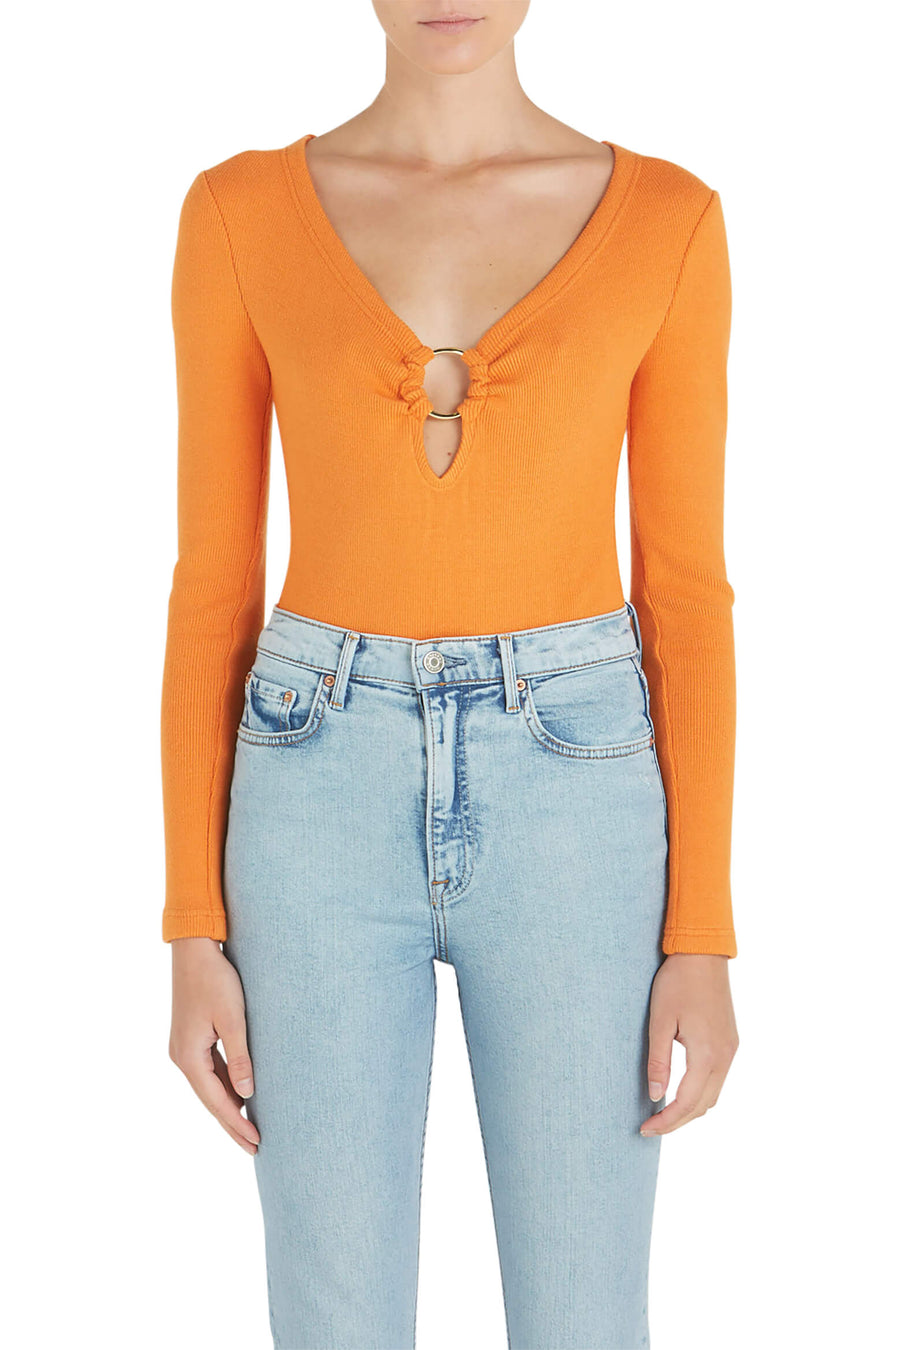 Jonathan Simkhai Directional Rib Bodysuit in Tangerine from The New Trend